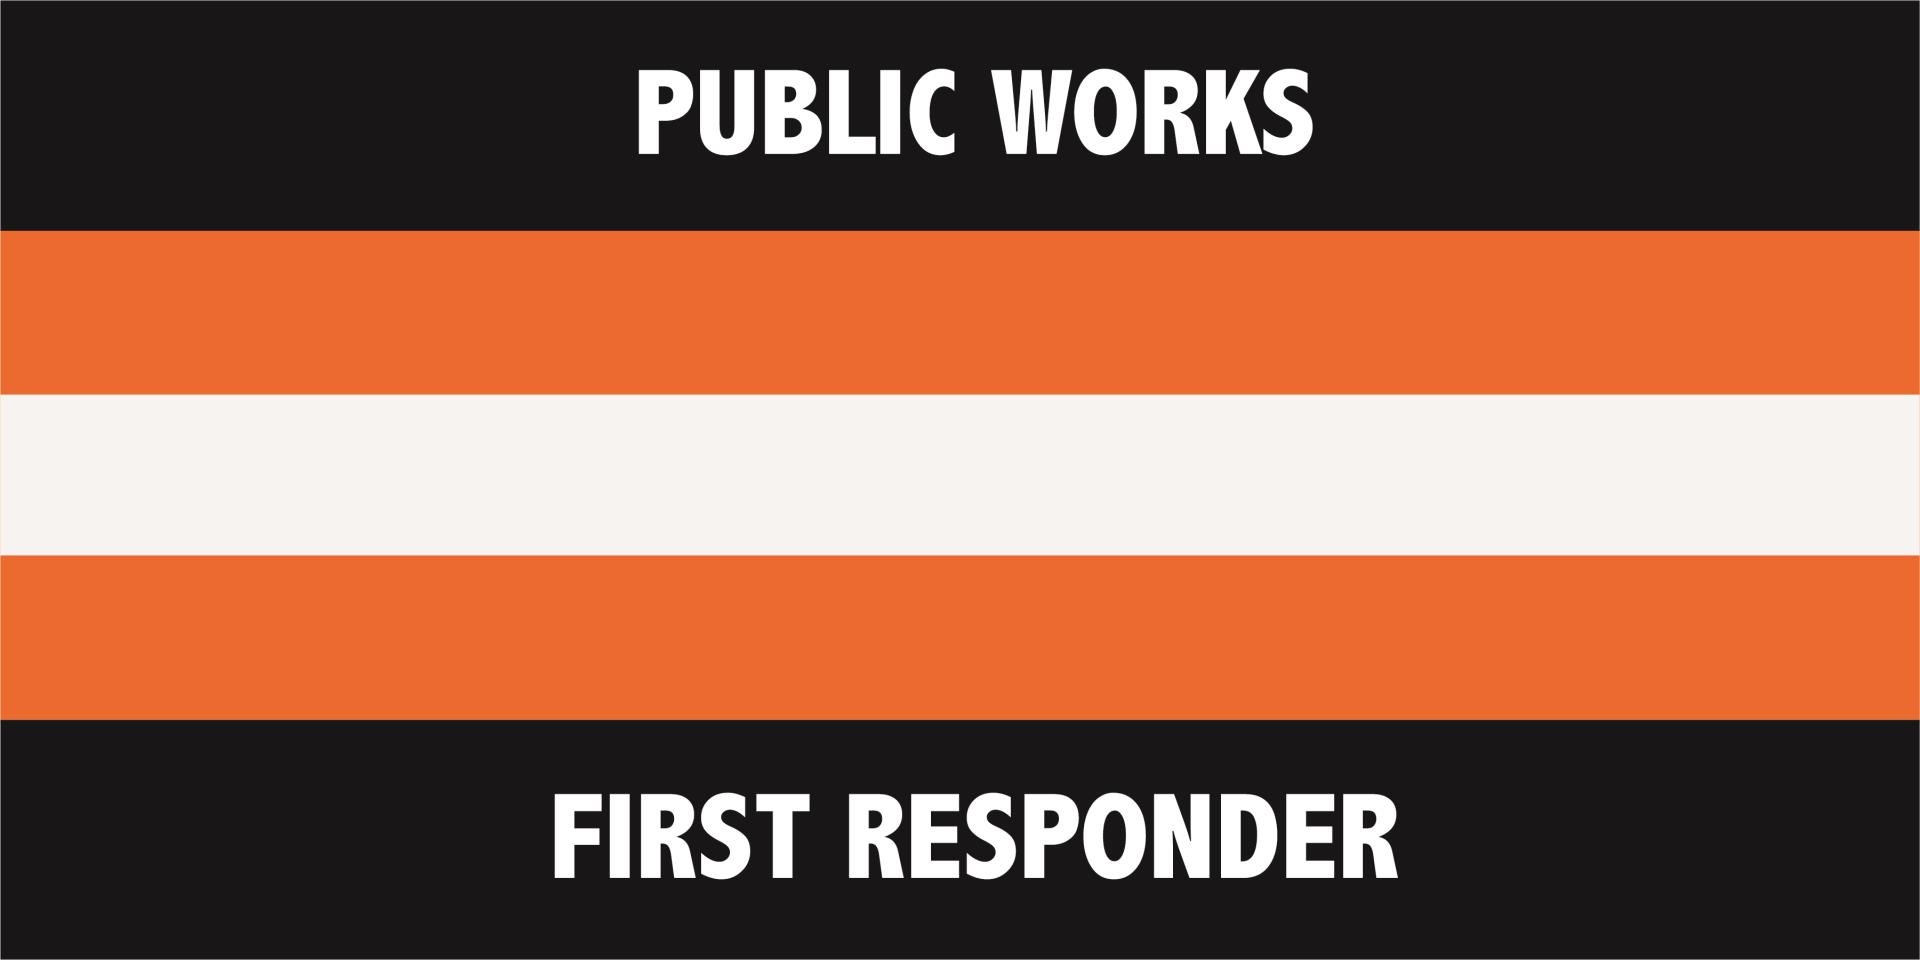 First Responder Graphic